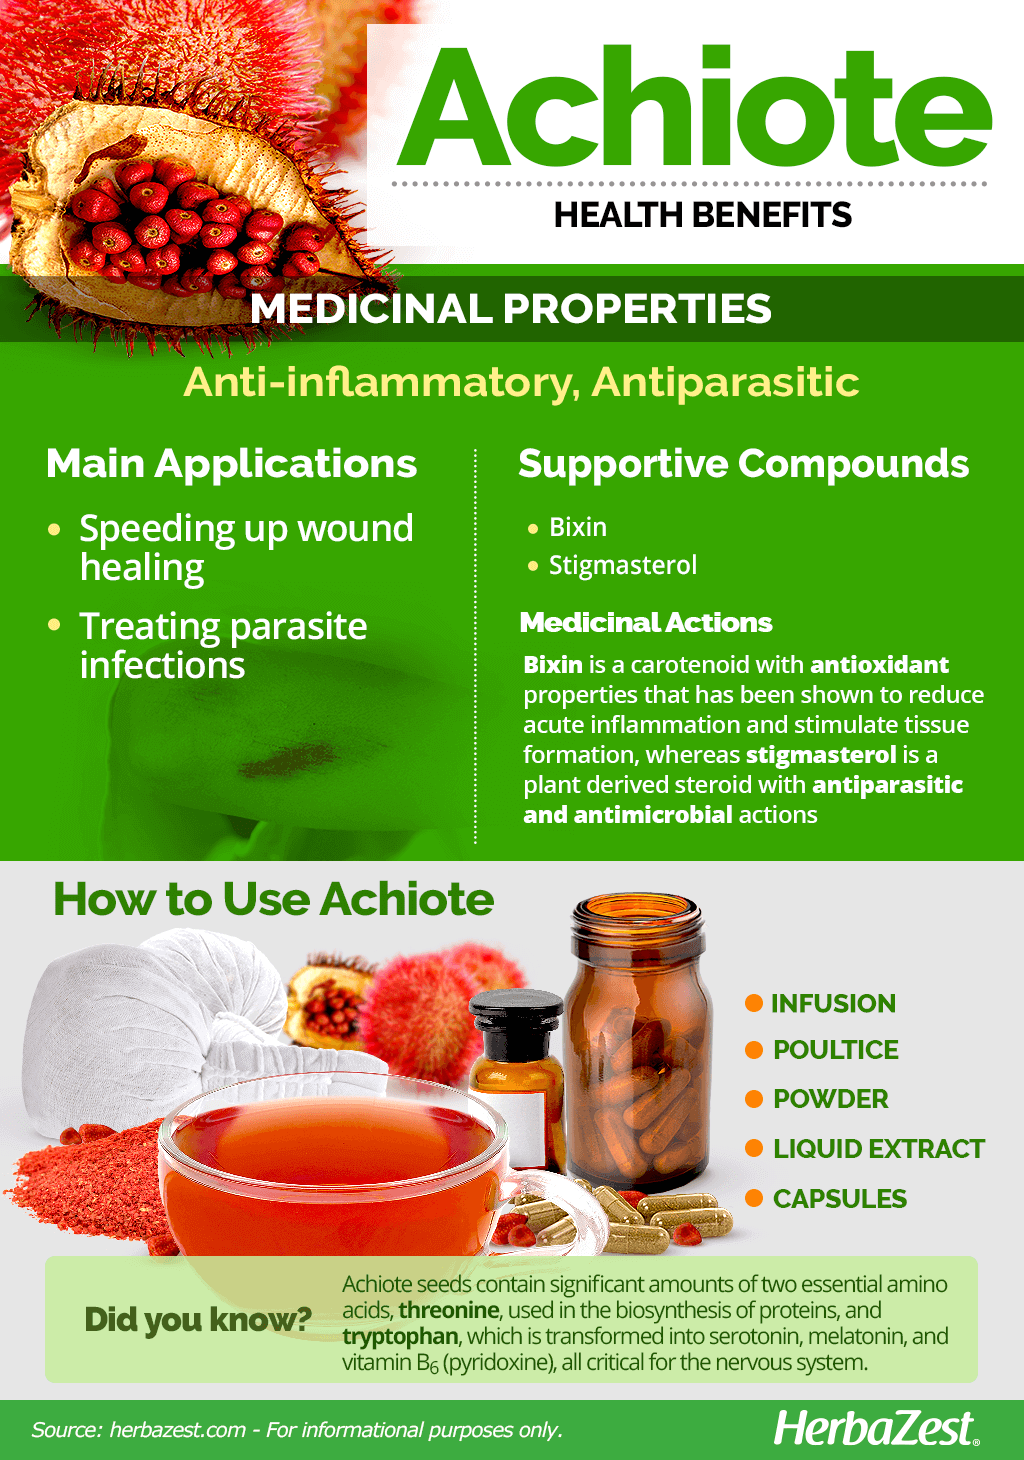 Achiote Benefits